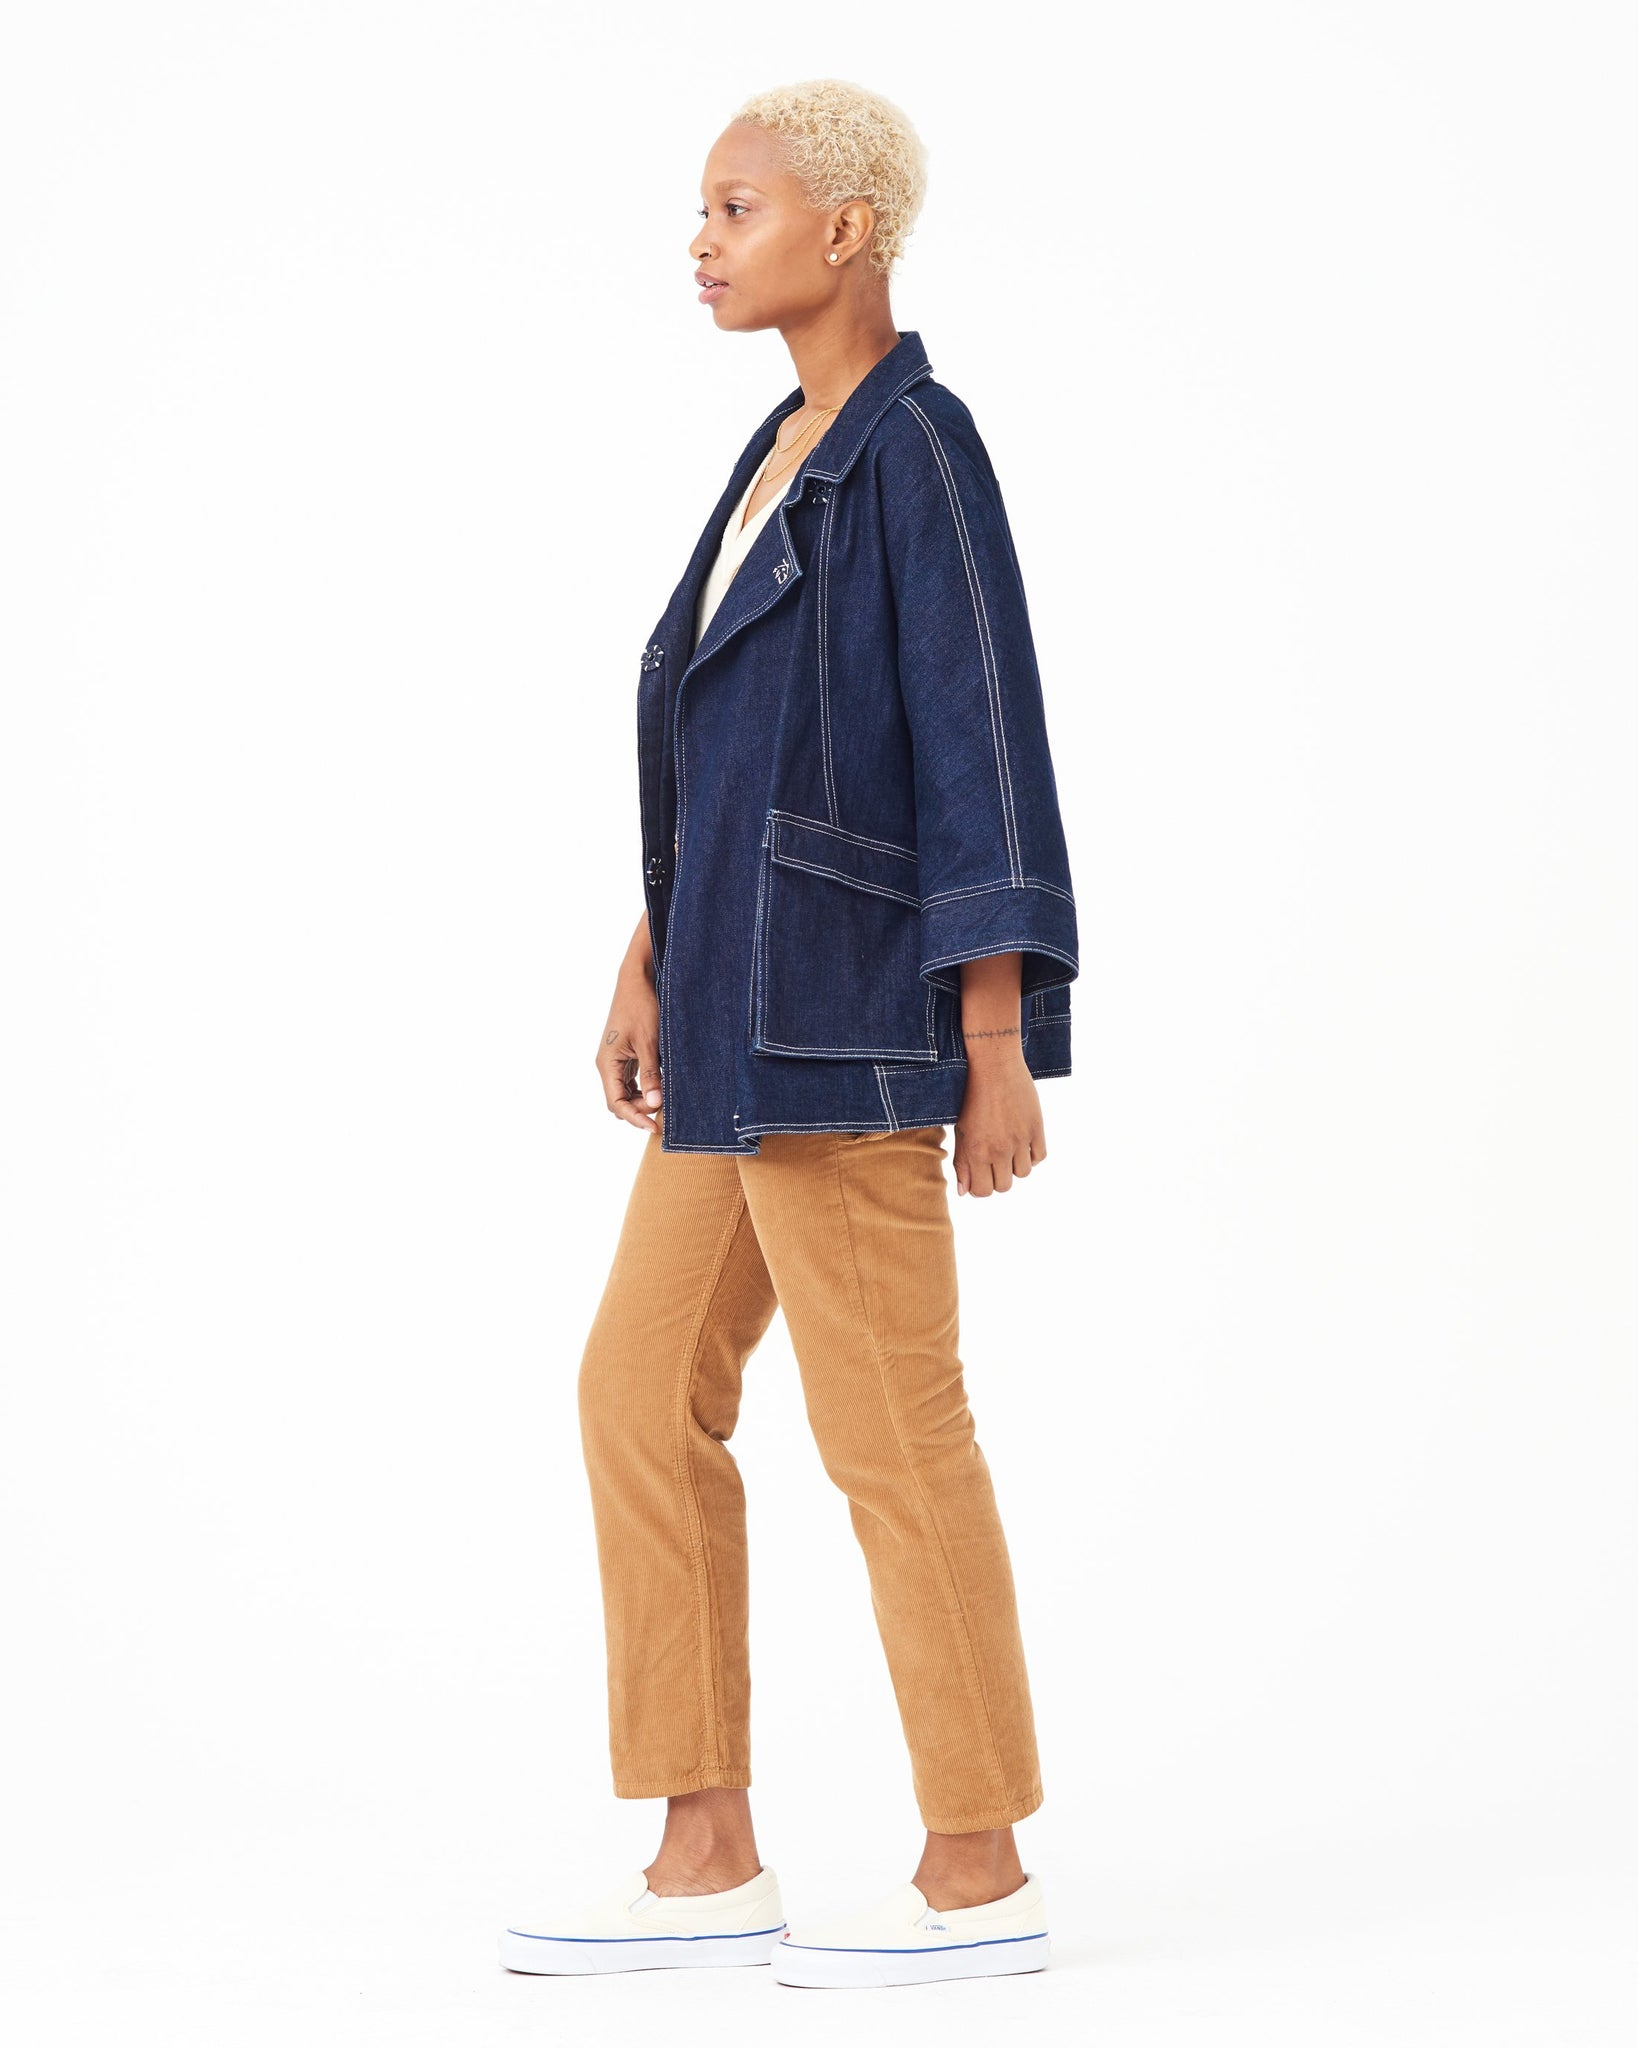 Sage Transitional Jacket - harpersage.com